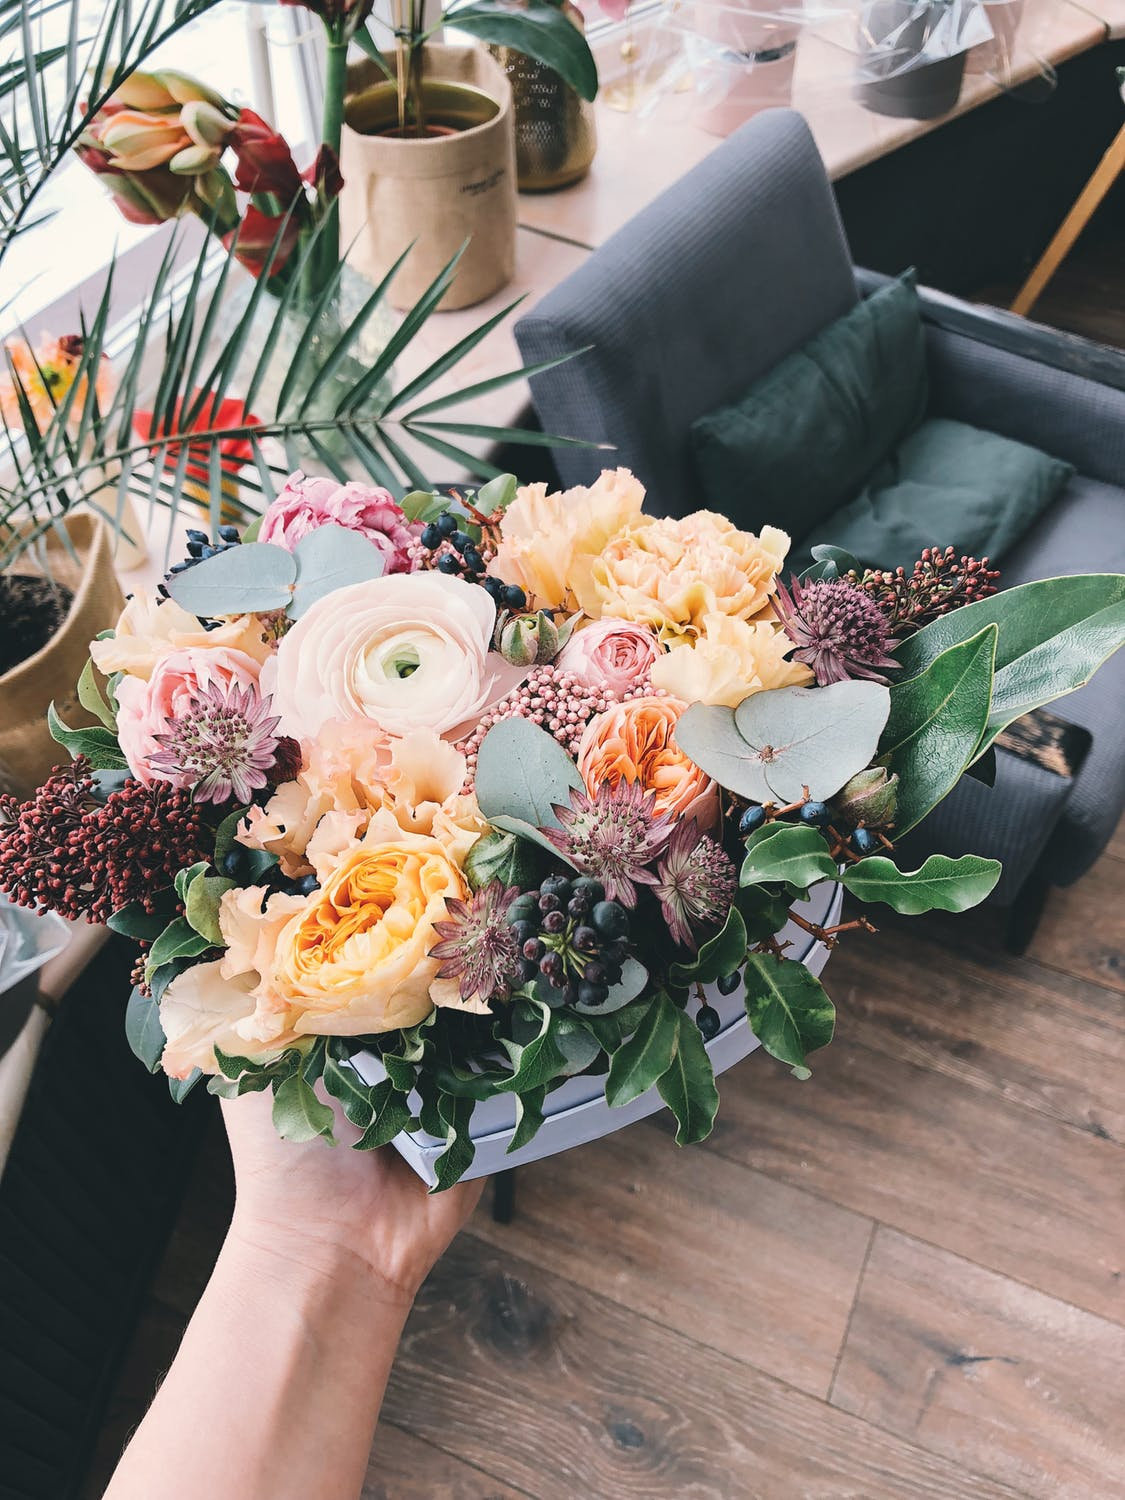 About the bothell florist bothell wa florist if you are ever dissatisfied with a product please let us know as soon as possible so we can either replace the arrangement or make another sort of izmirmasajfo